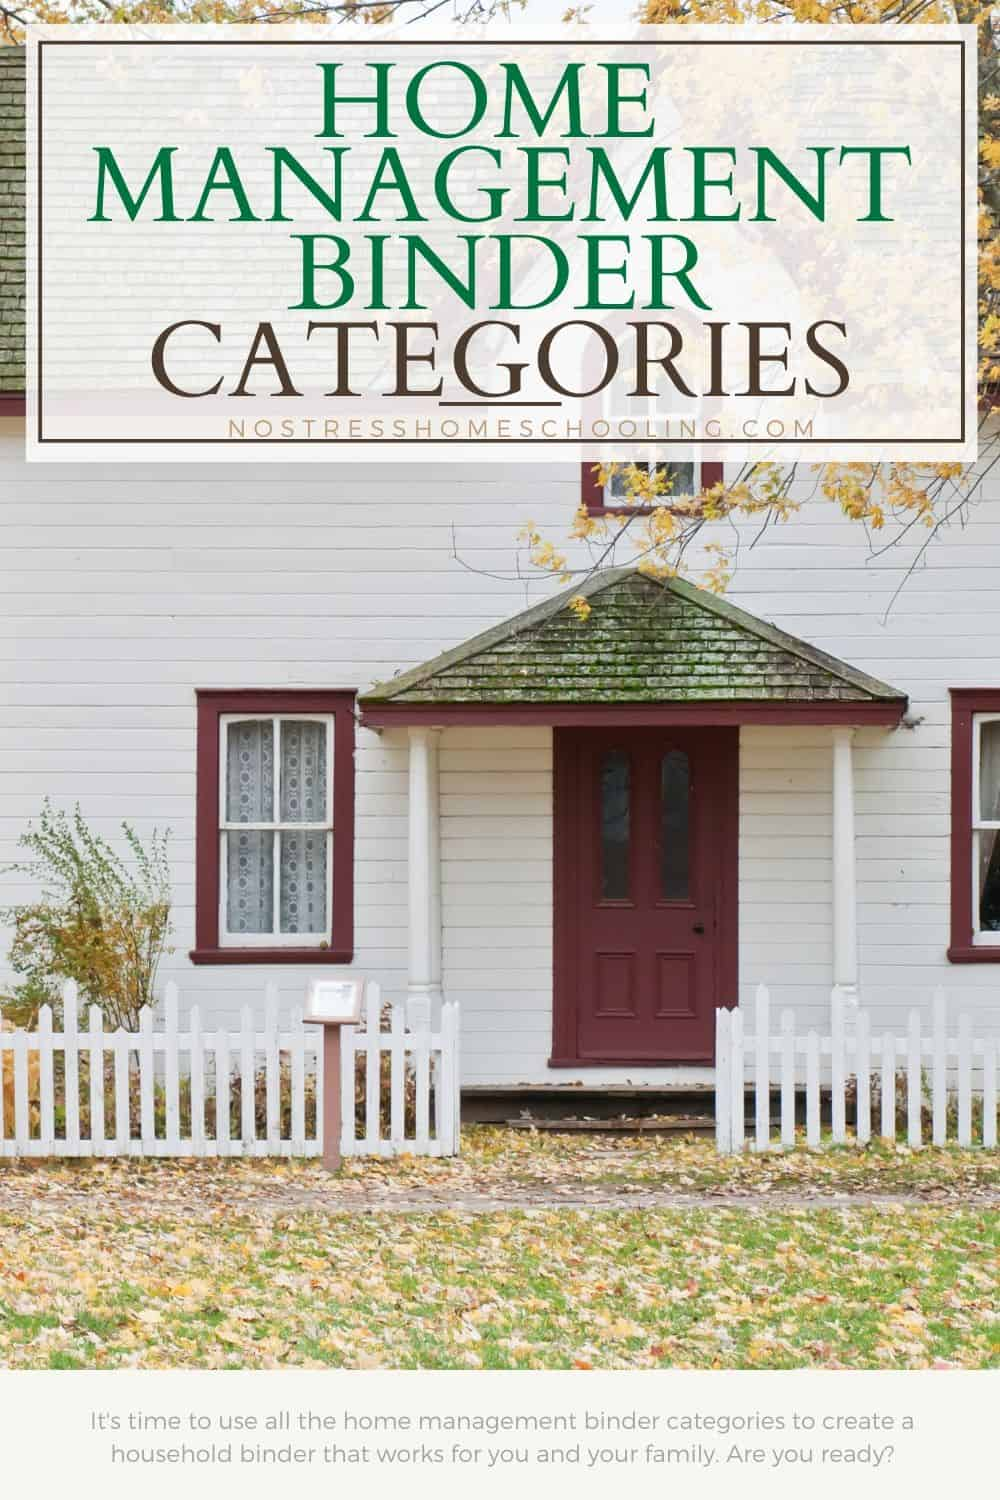 It's time to use all the home management binder categories to create a household binder that works for you and your family. Are you ready?